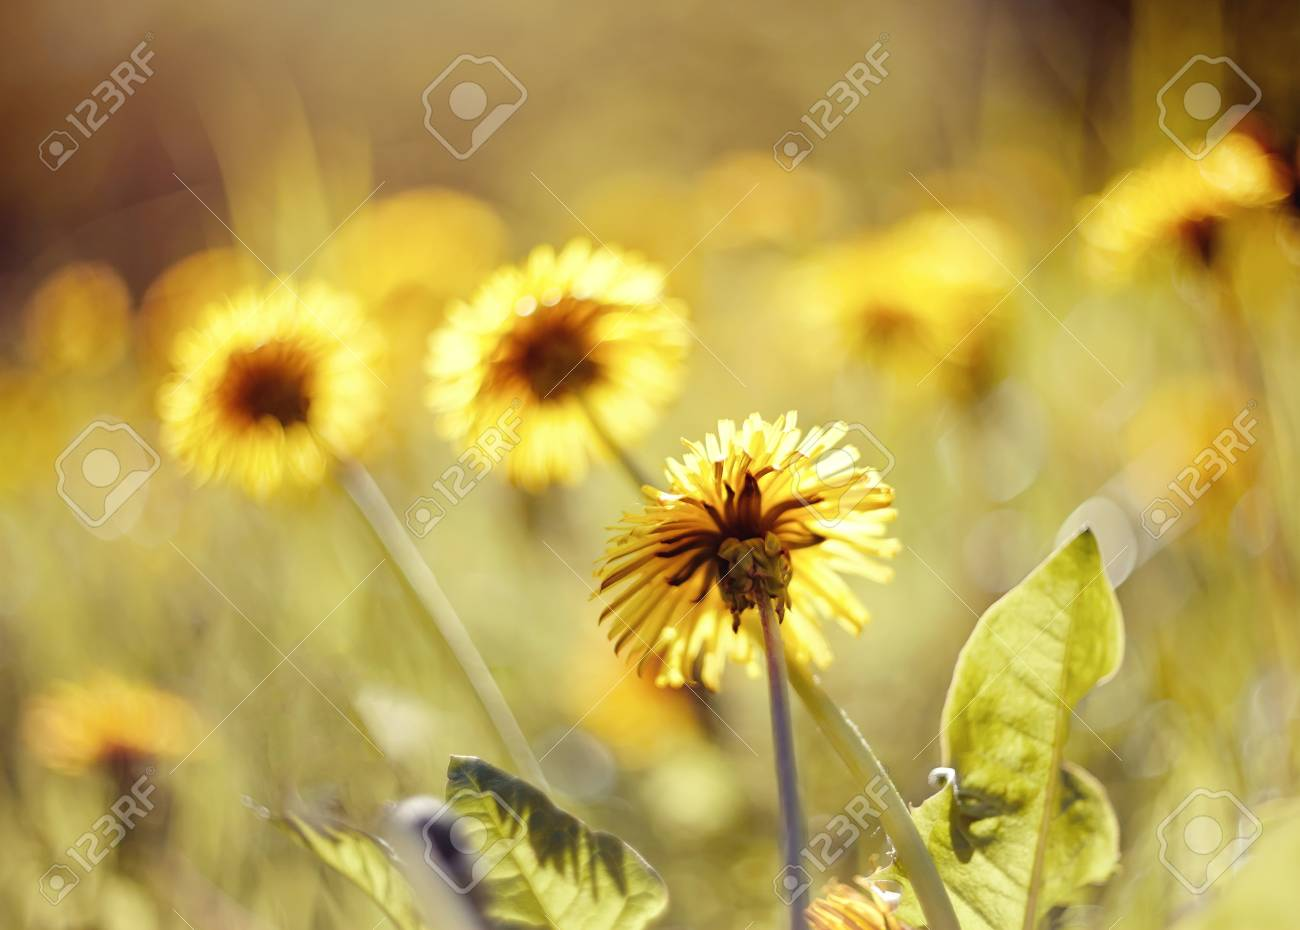 Yellow Summer Weed Flowers In The Field Dandelions Stock Photo